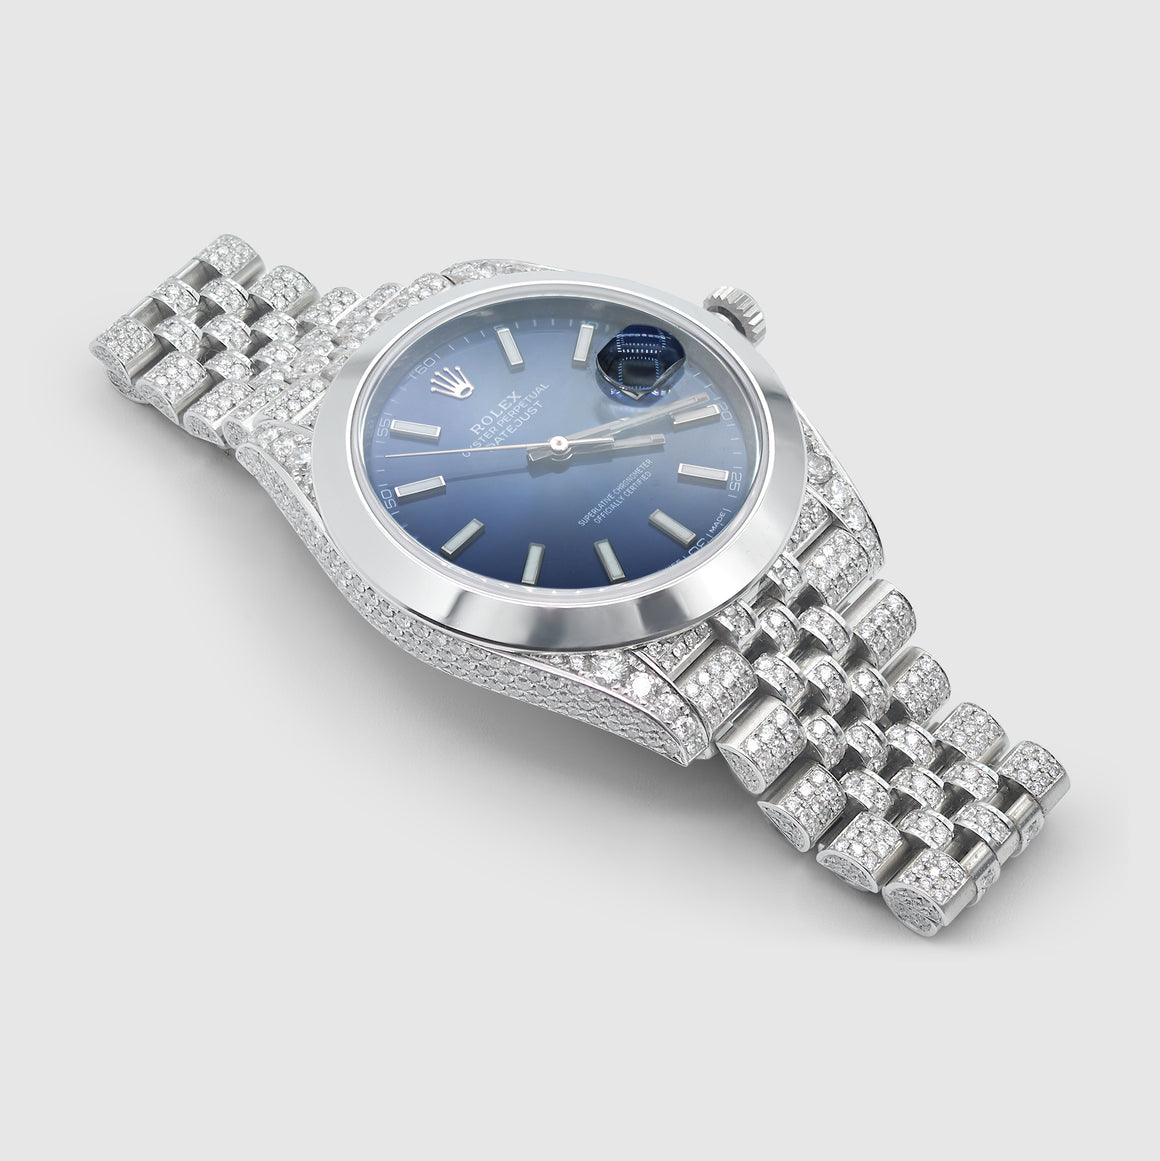 Rolex DateJust 41mm Diamond Stainless Steel Blue Dial Watch